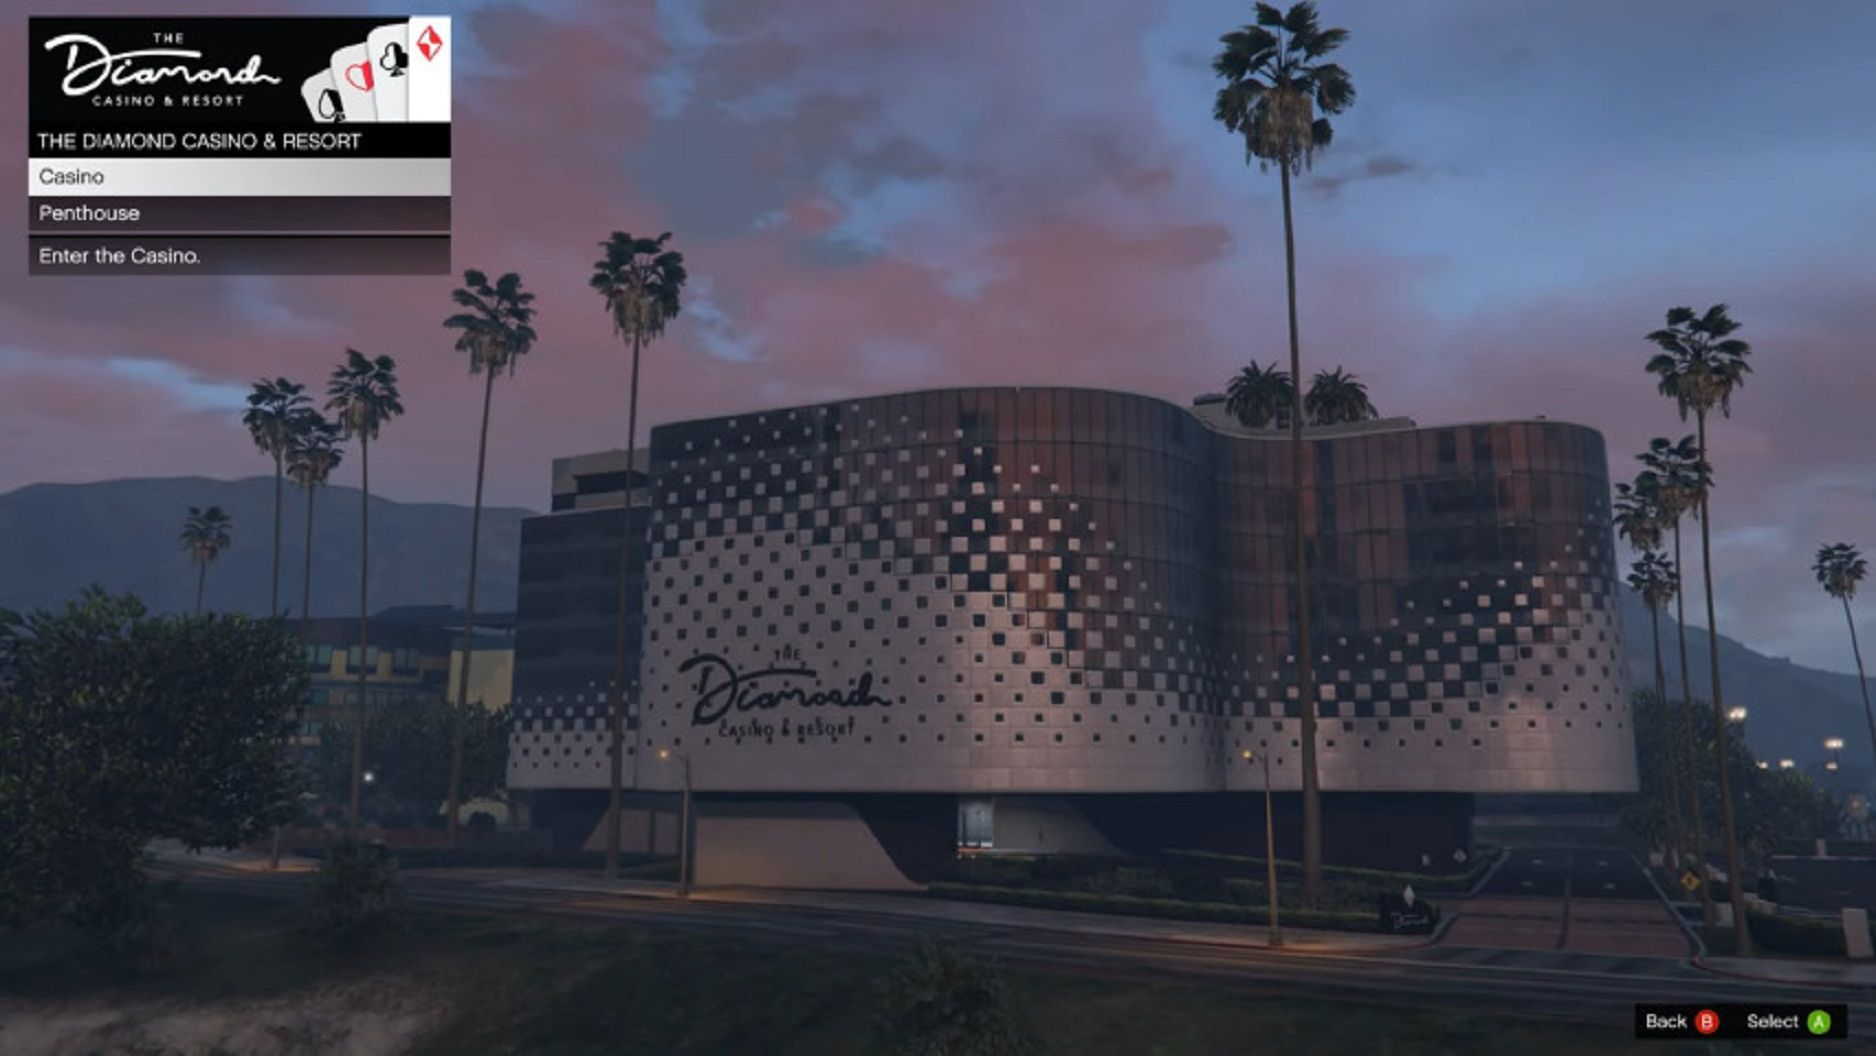 GTA 5 Online Plans To Add A Very Sophisticated Diamond